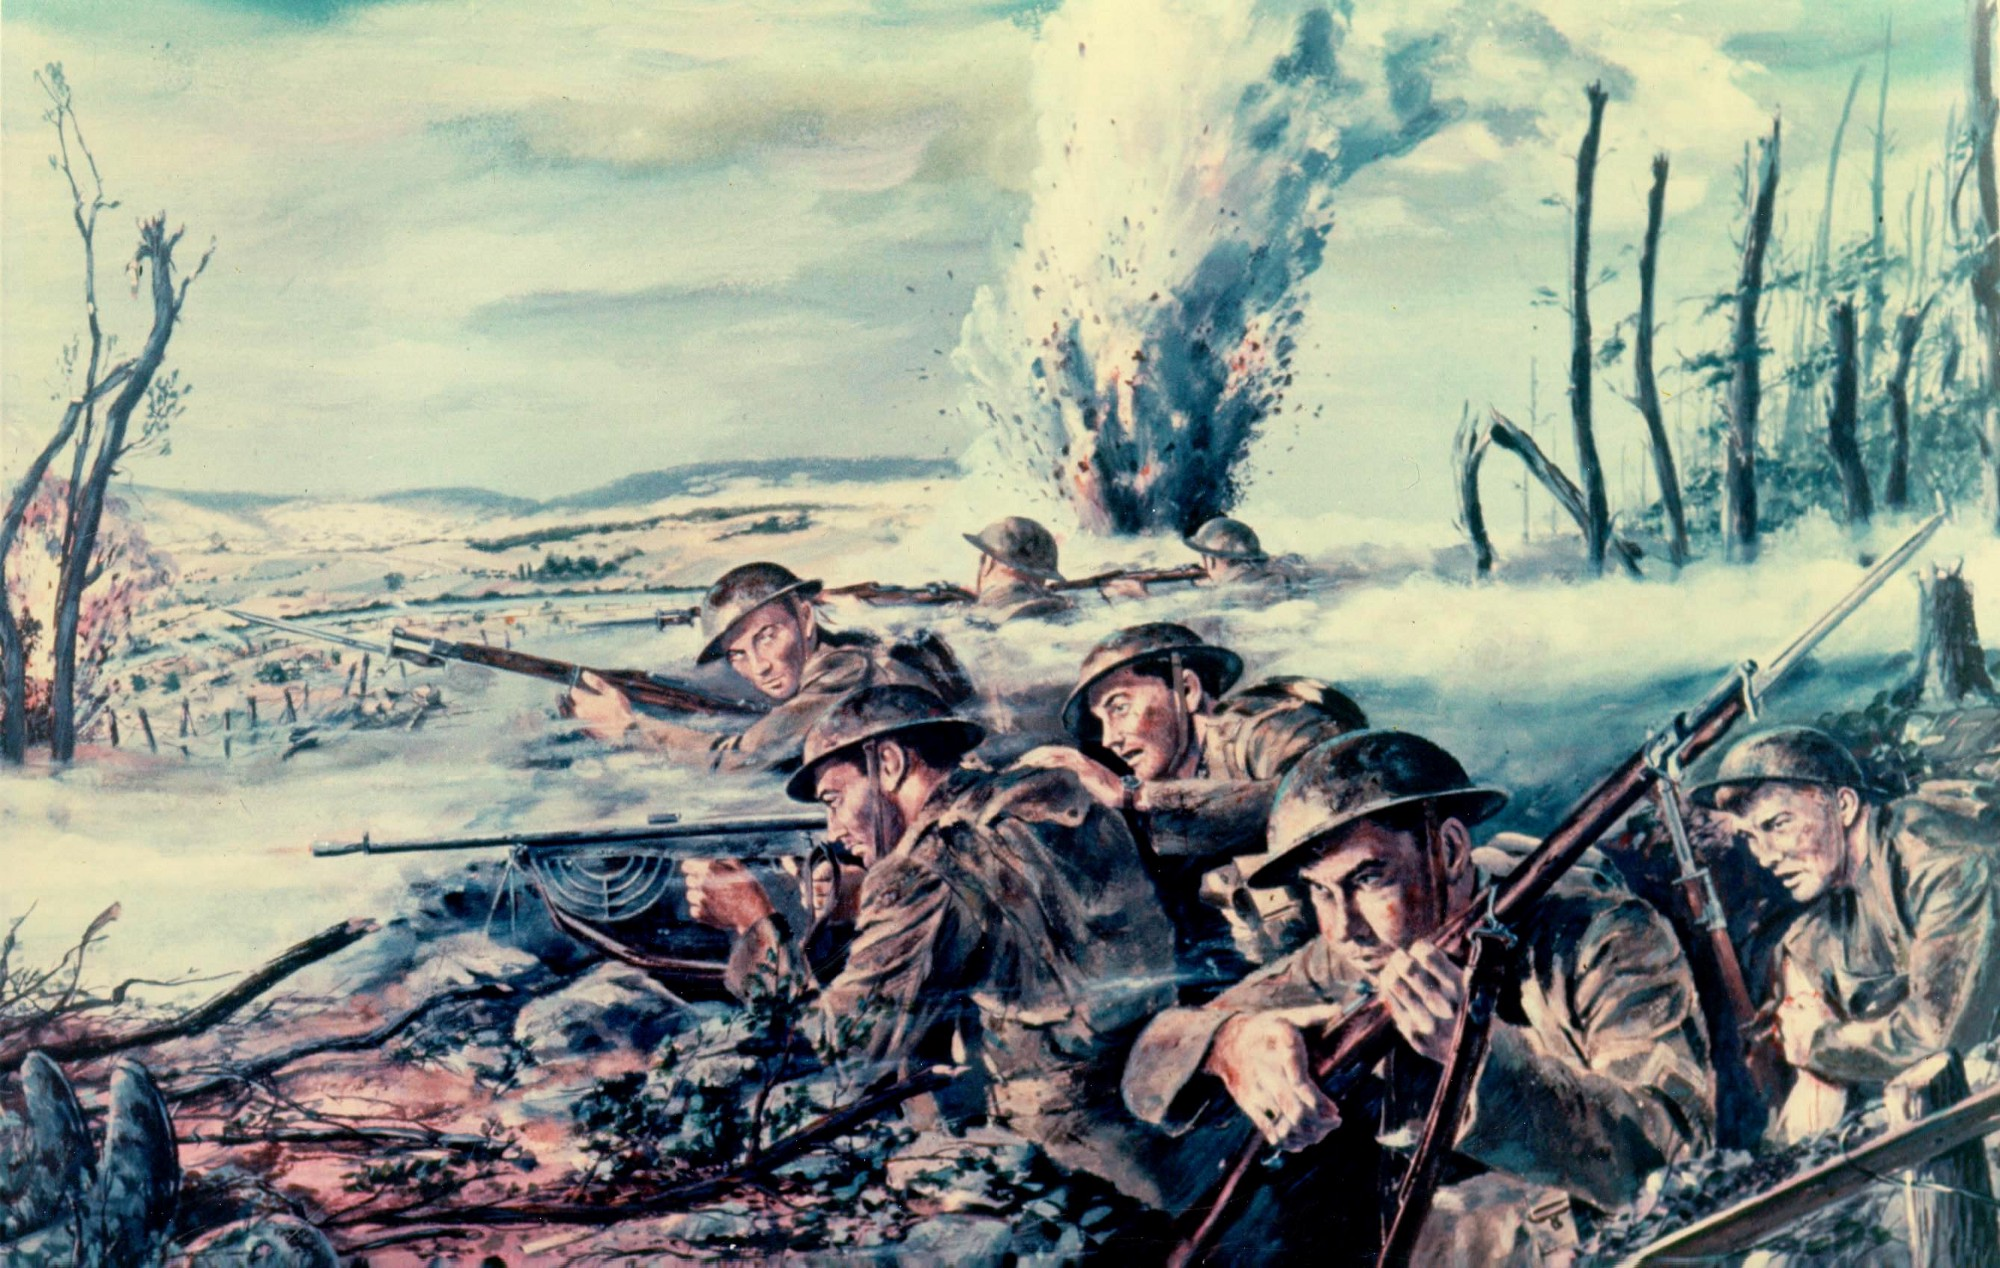 a look at the justification of the united states role in the first world war World war i began 100 years ago this month, and in many ways, writes historian margaret macmillan, it remains the defining conflict of the modern era.